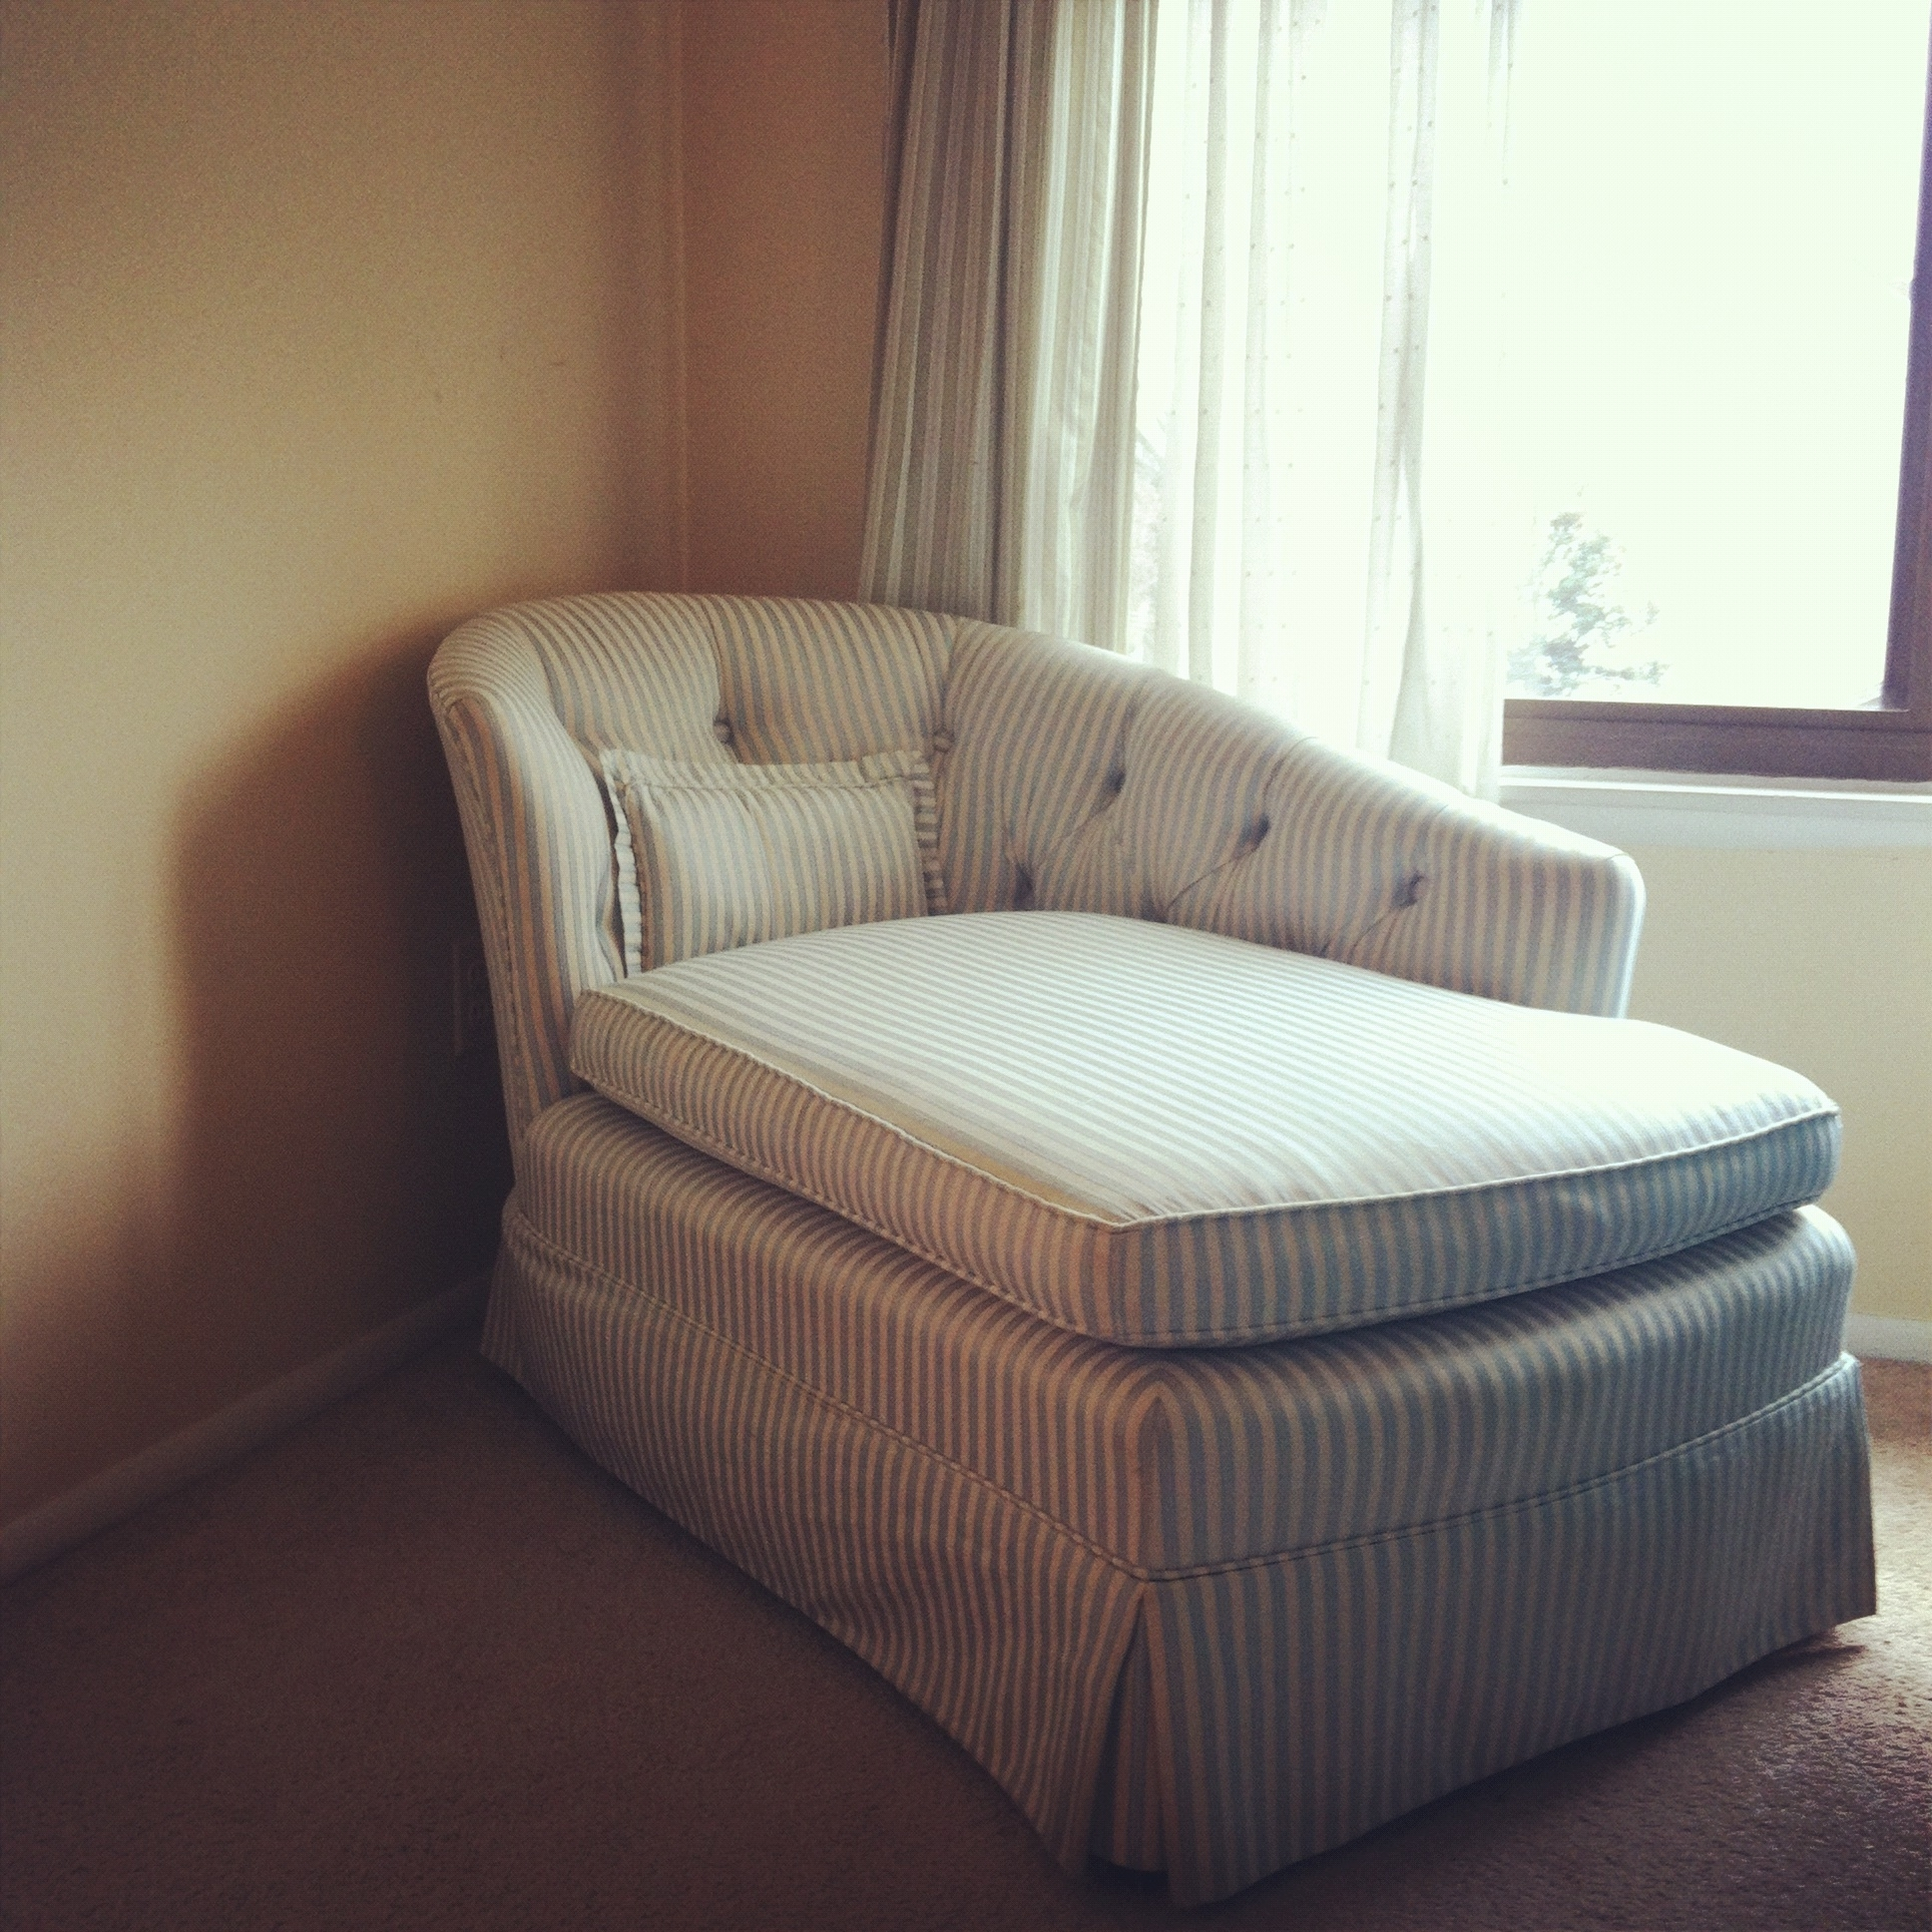 Small Skirted Striped Chaise Lounge Chair For Bedroom – Decofurnish Inside Recent Chairs With A Half Chaise (View 12 of 15)